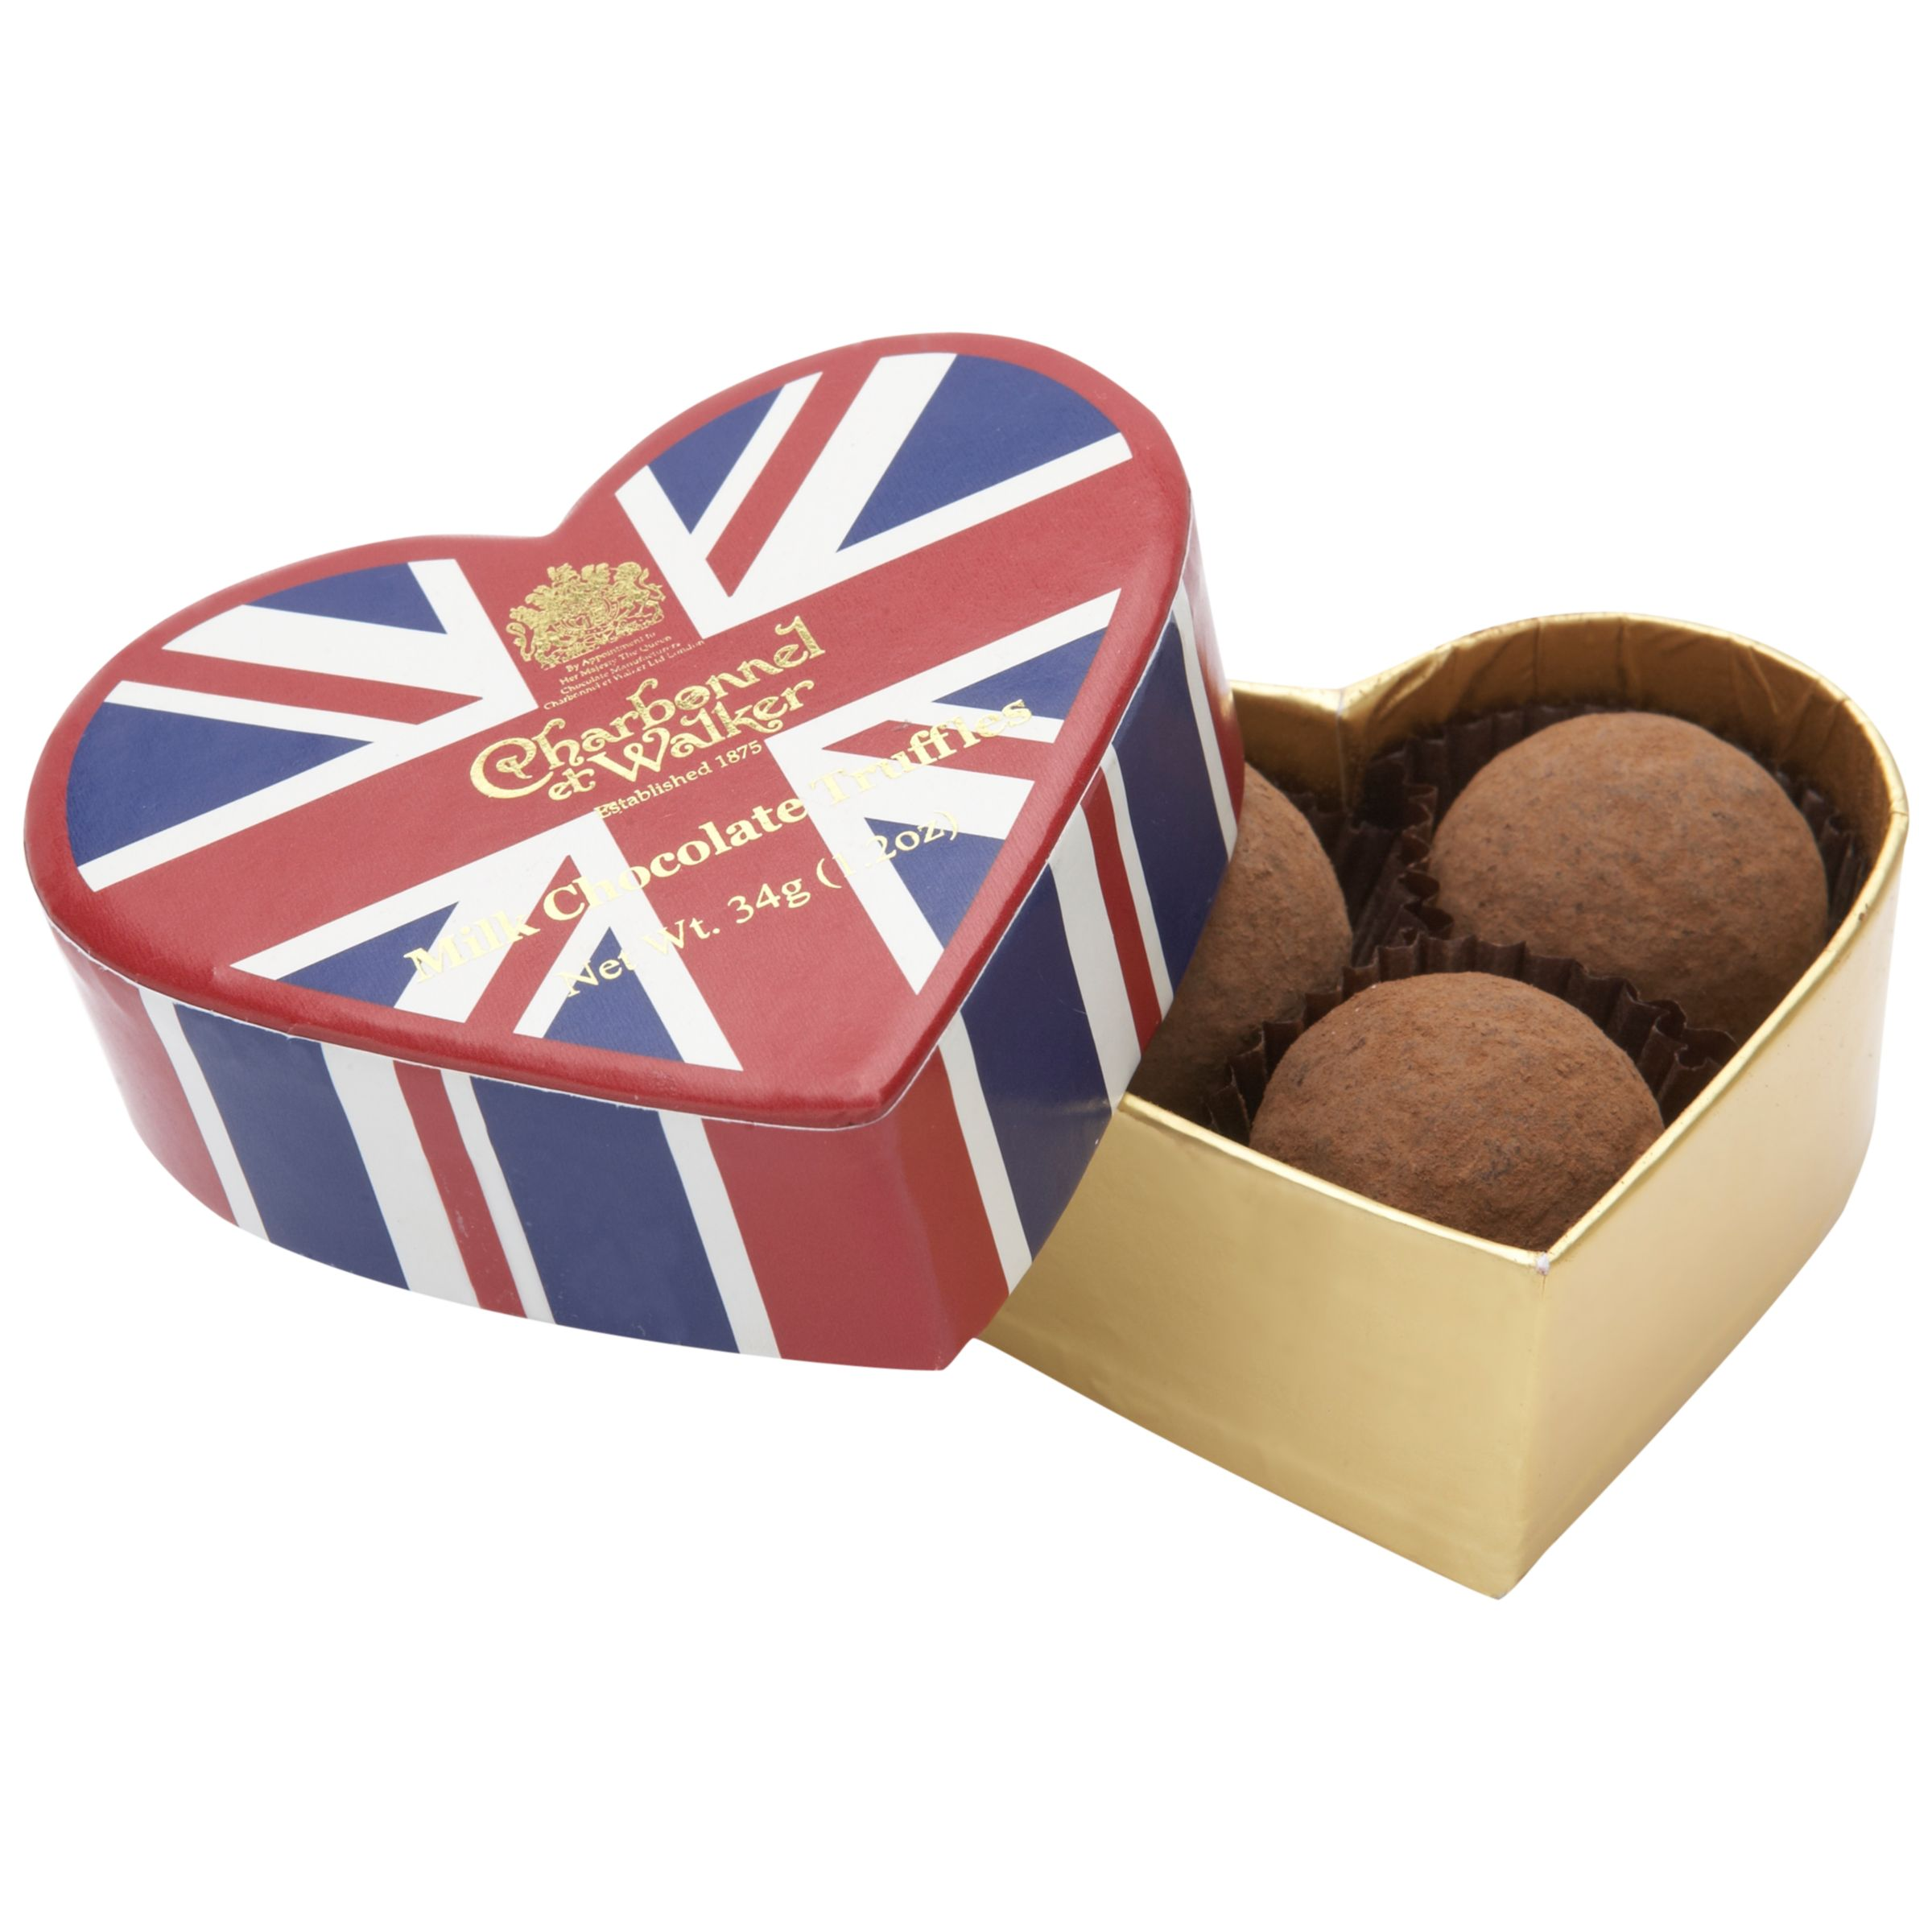 Charbonnel et Walker Charbonnel et Walker Mini Truffles in a Union Jack Heart Box, 34g